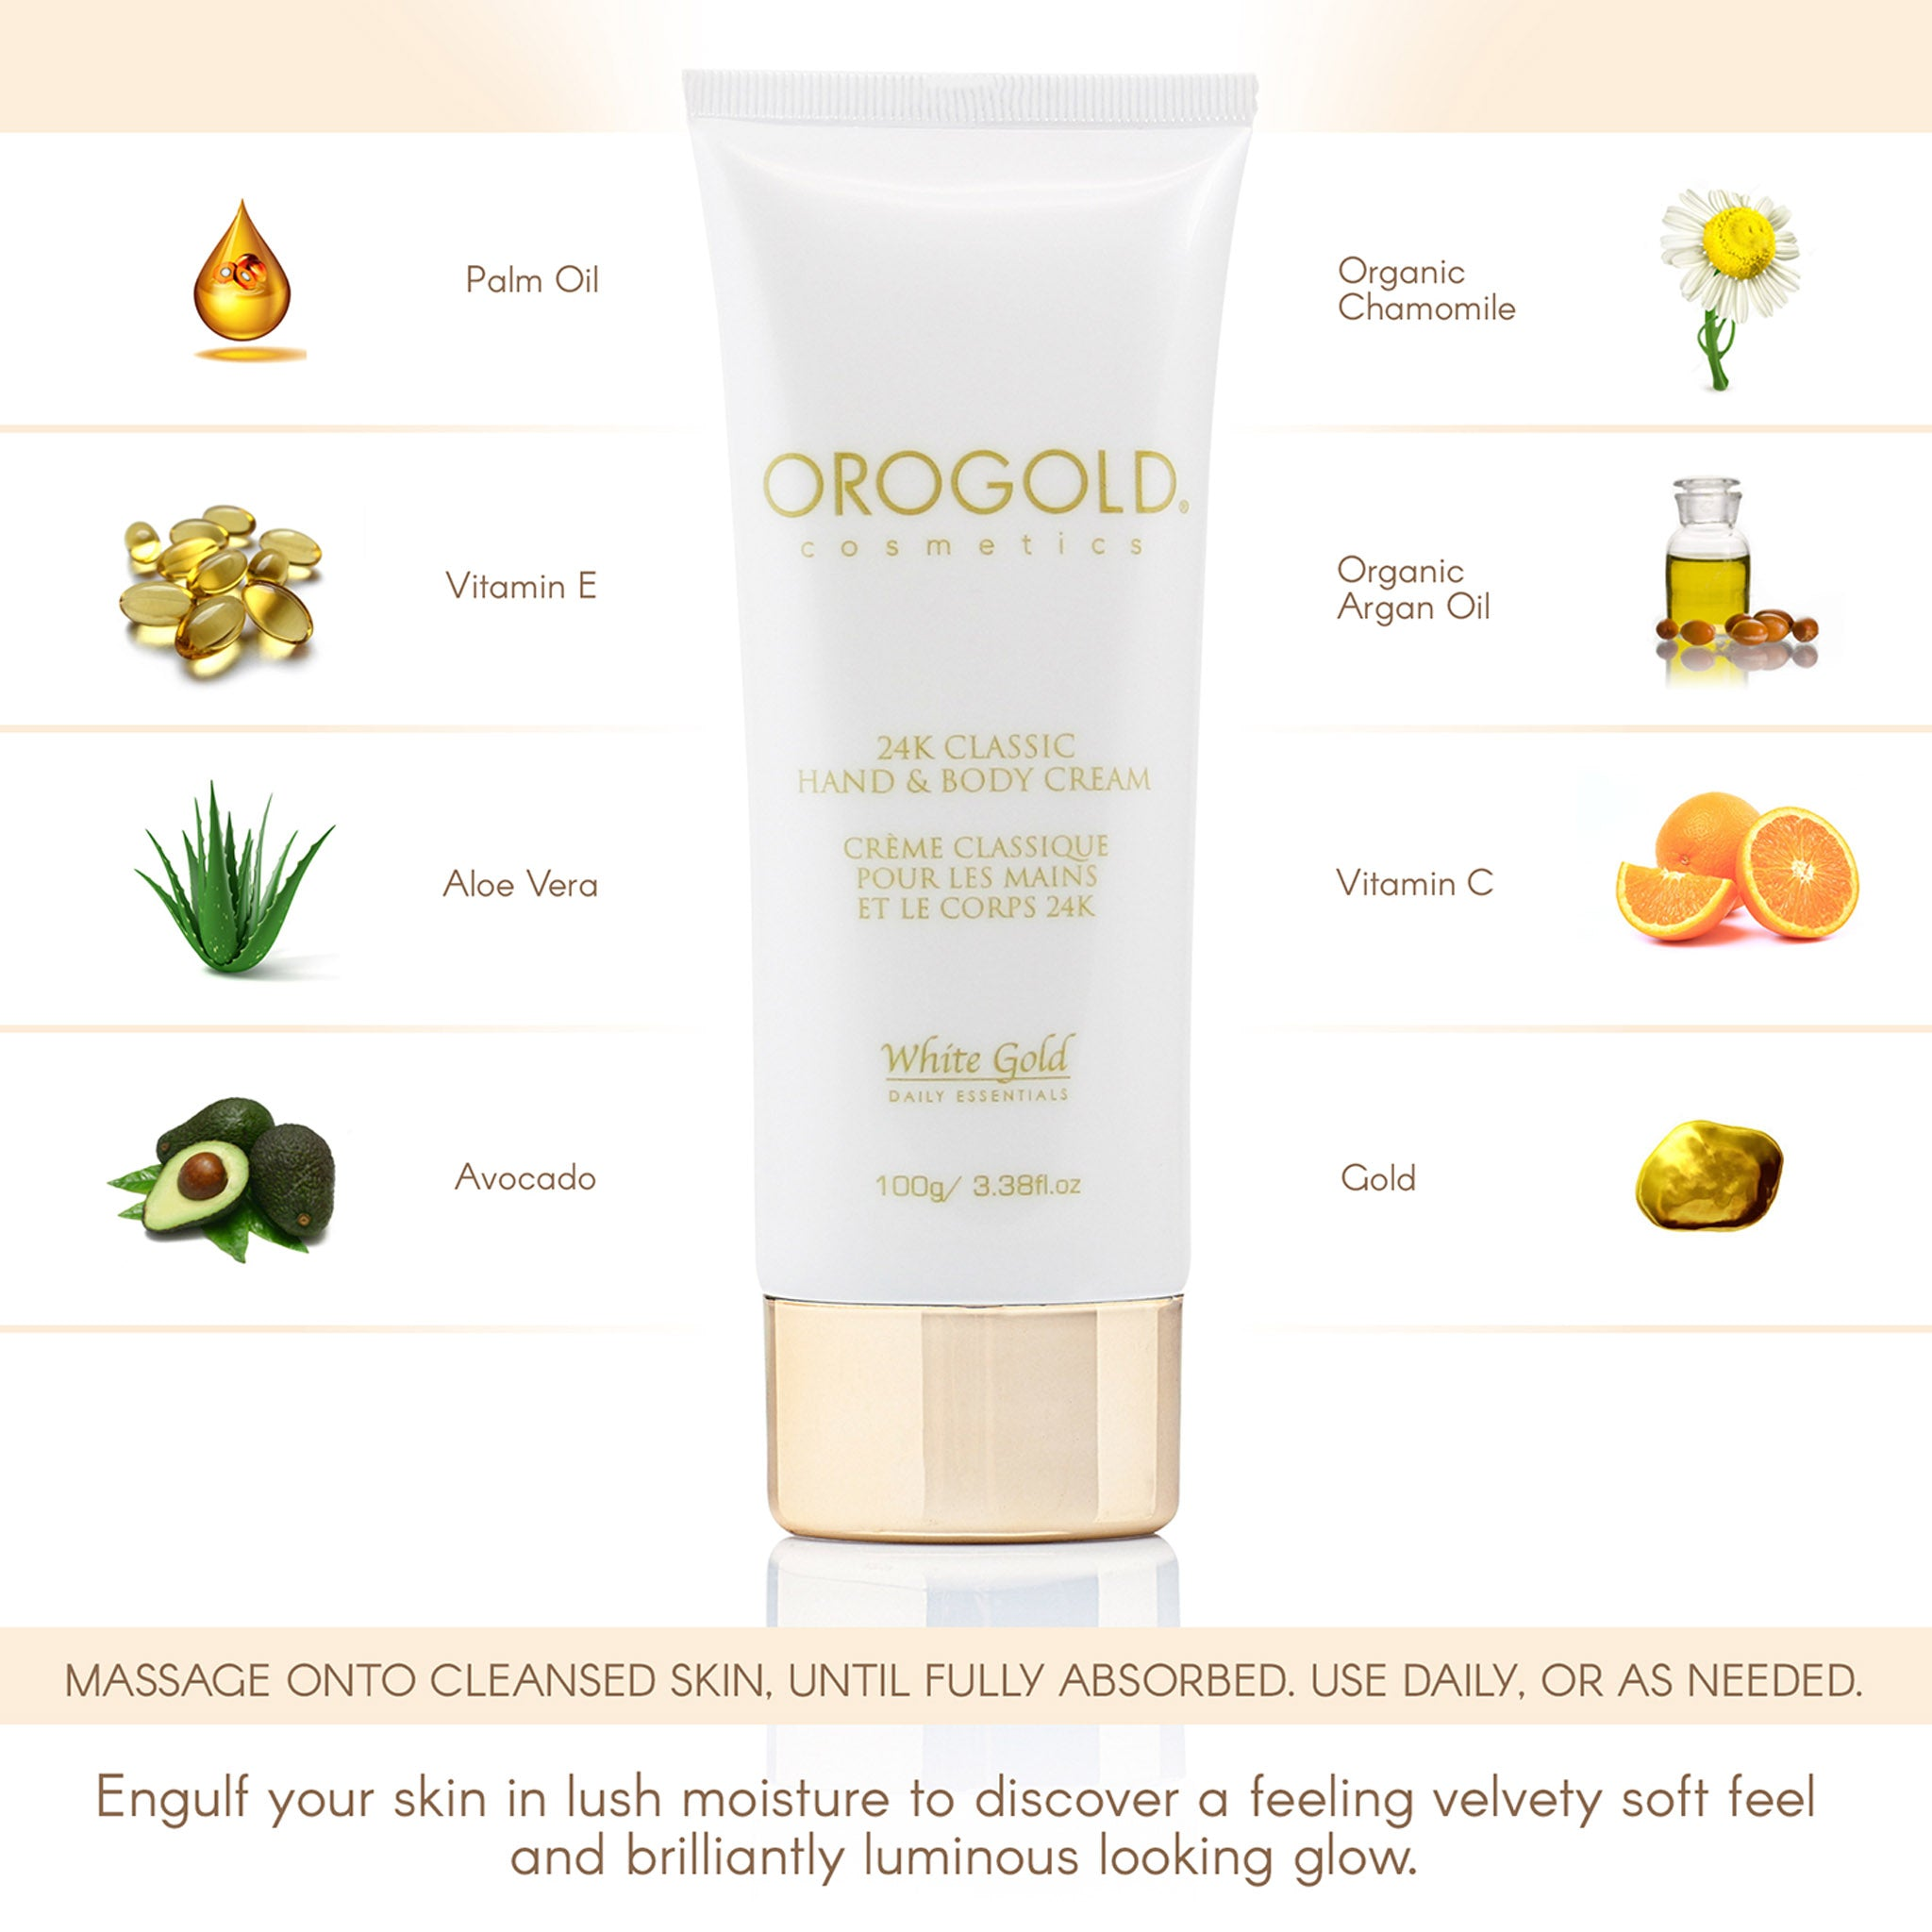 orogold hand lotion and body lotion